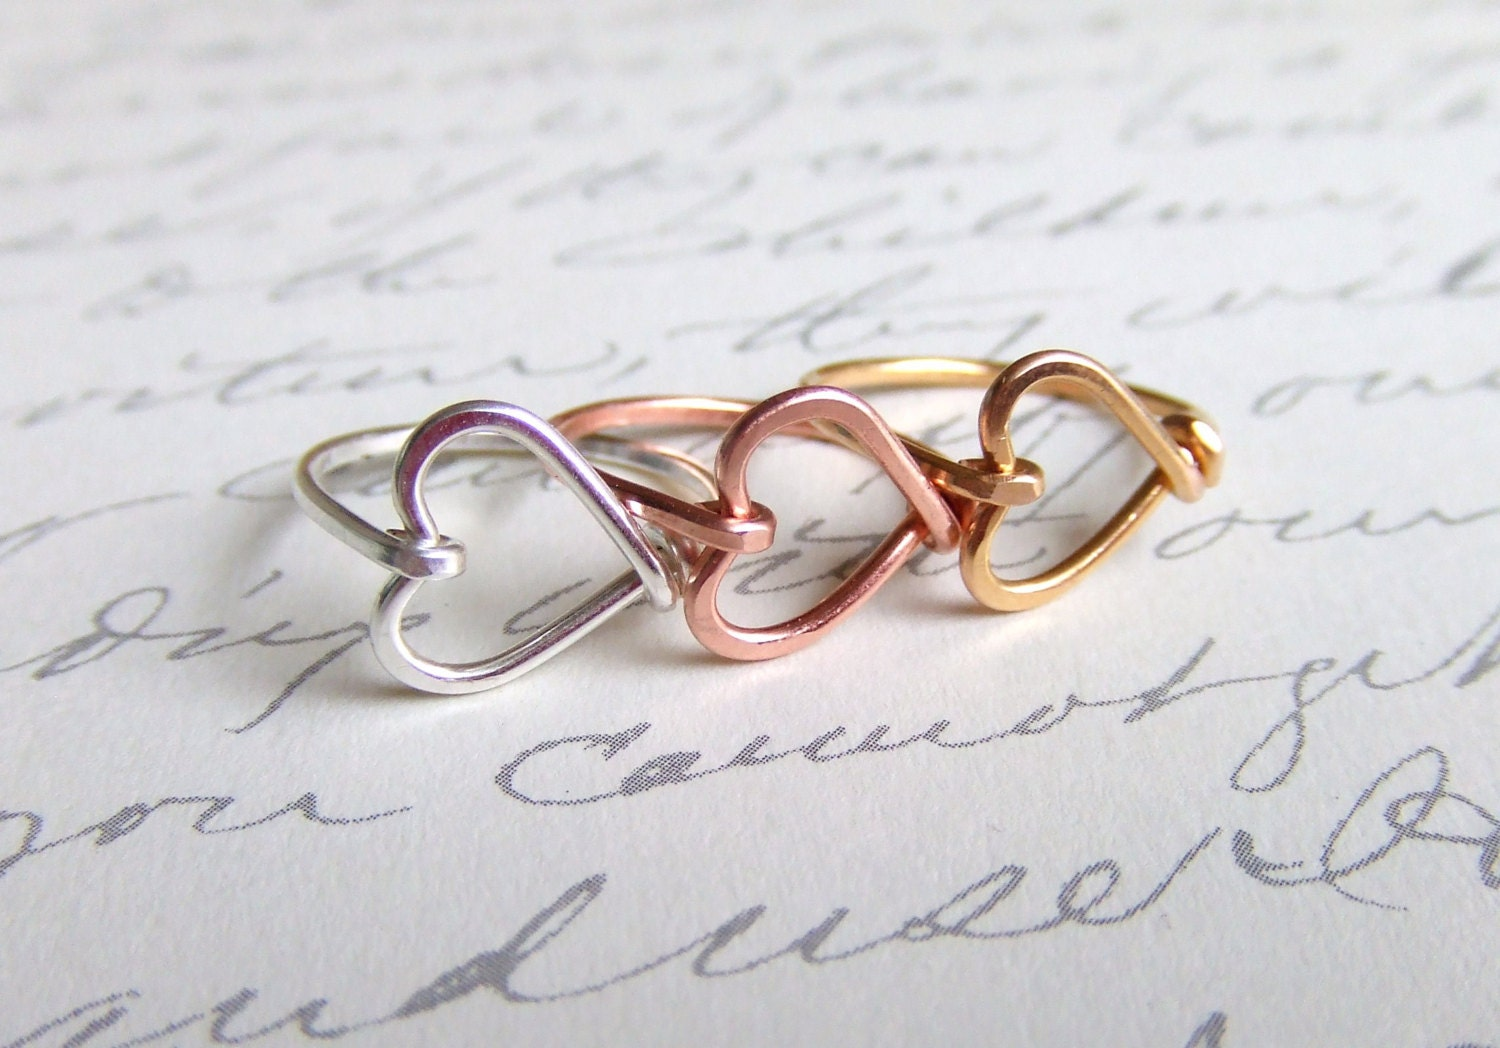 Heart Ring Handcrafted Wire Heart Sterling Silver 14K Gold